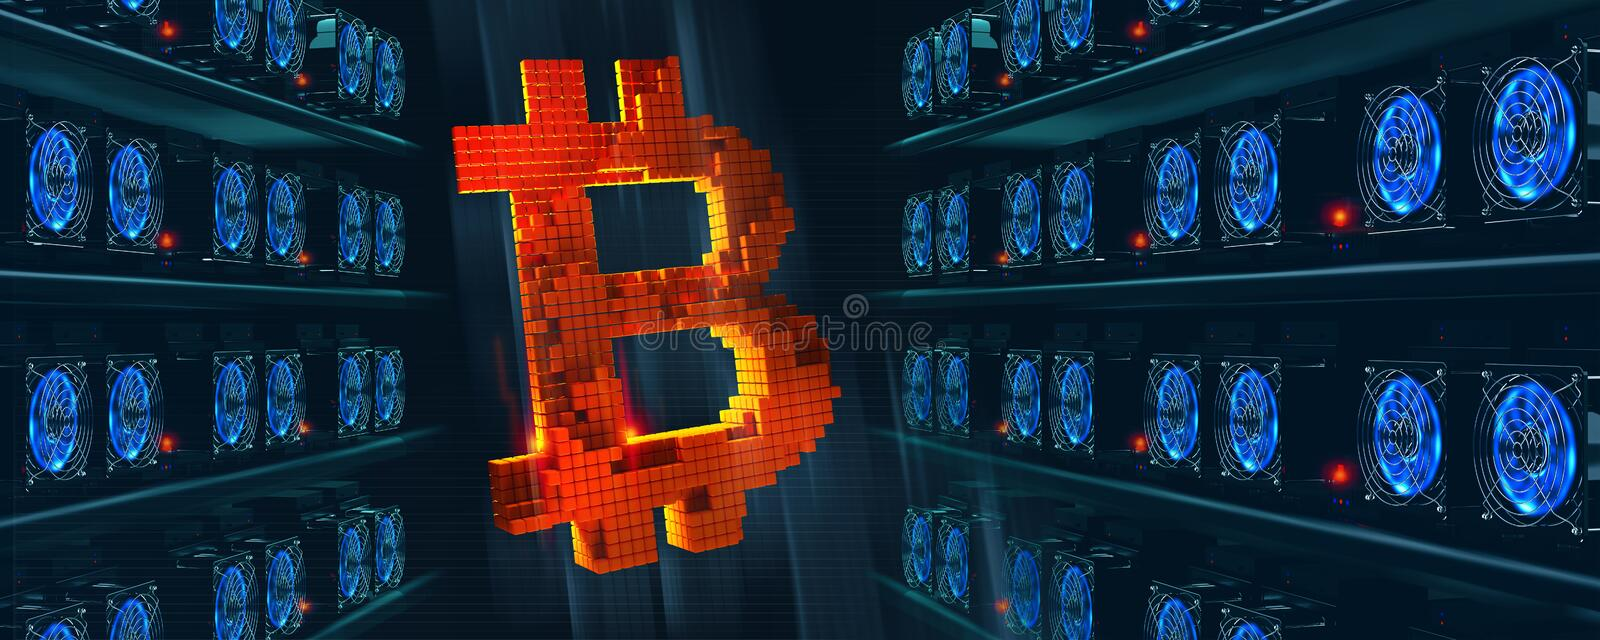 Bitcoin. Cryptocurrency mining farm. Blockchain technology. 3D illustration of abstract cyberspace vector illustration